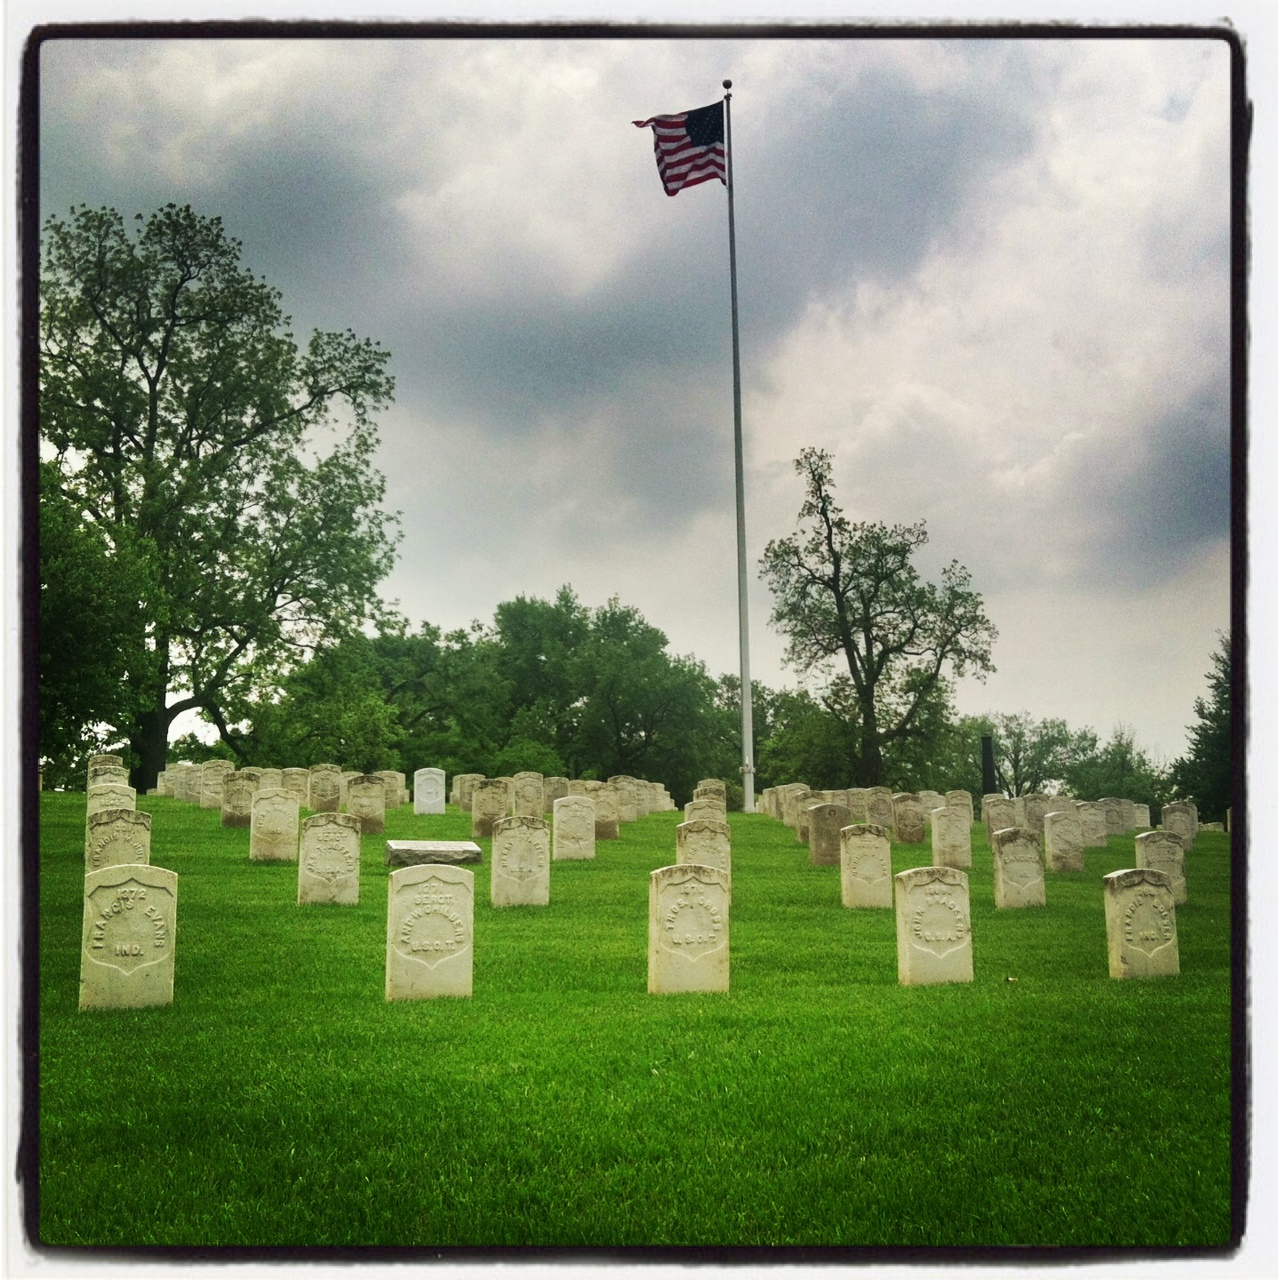 Friday Favorite: Indy the Patriotic